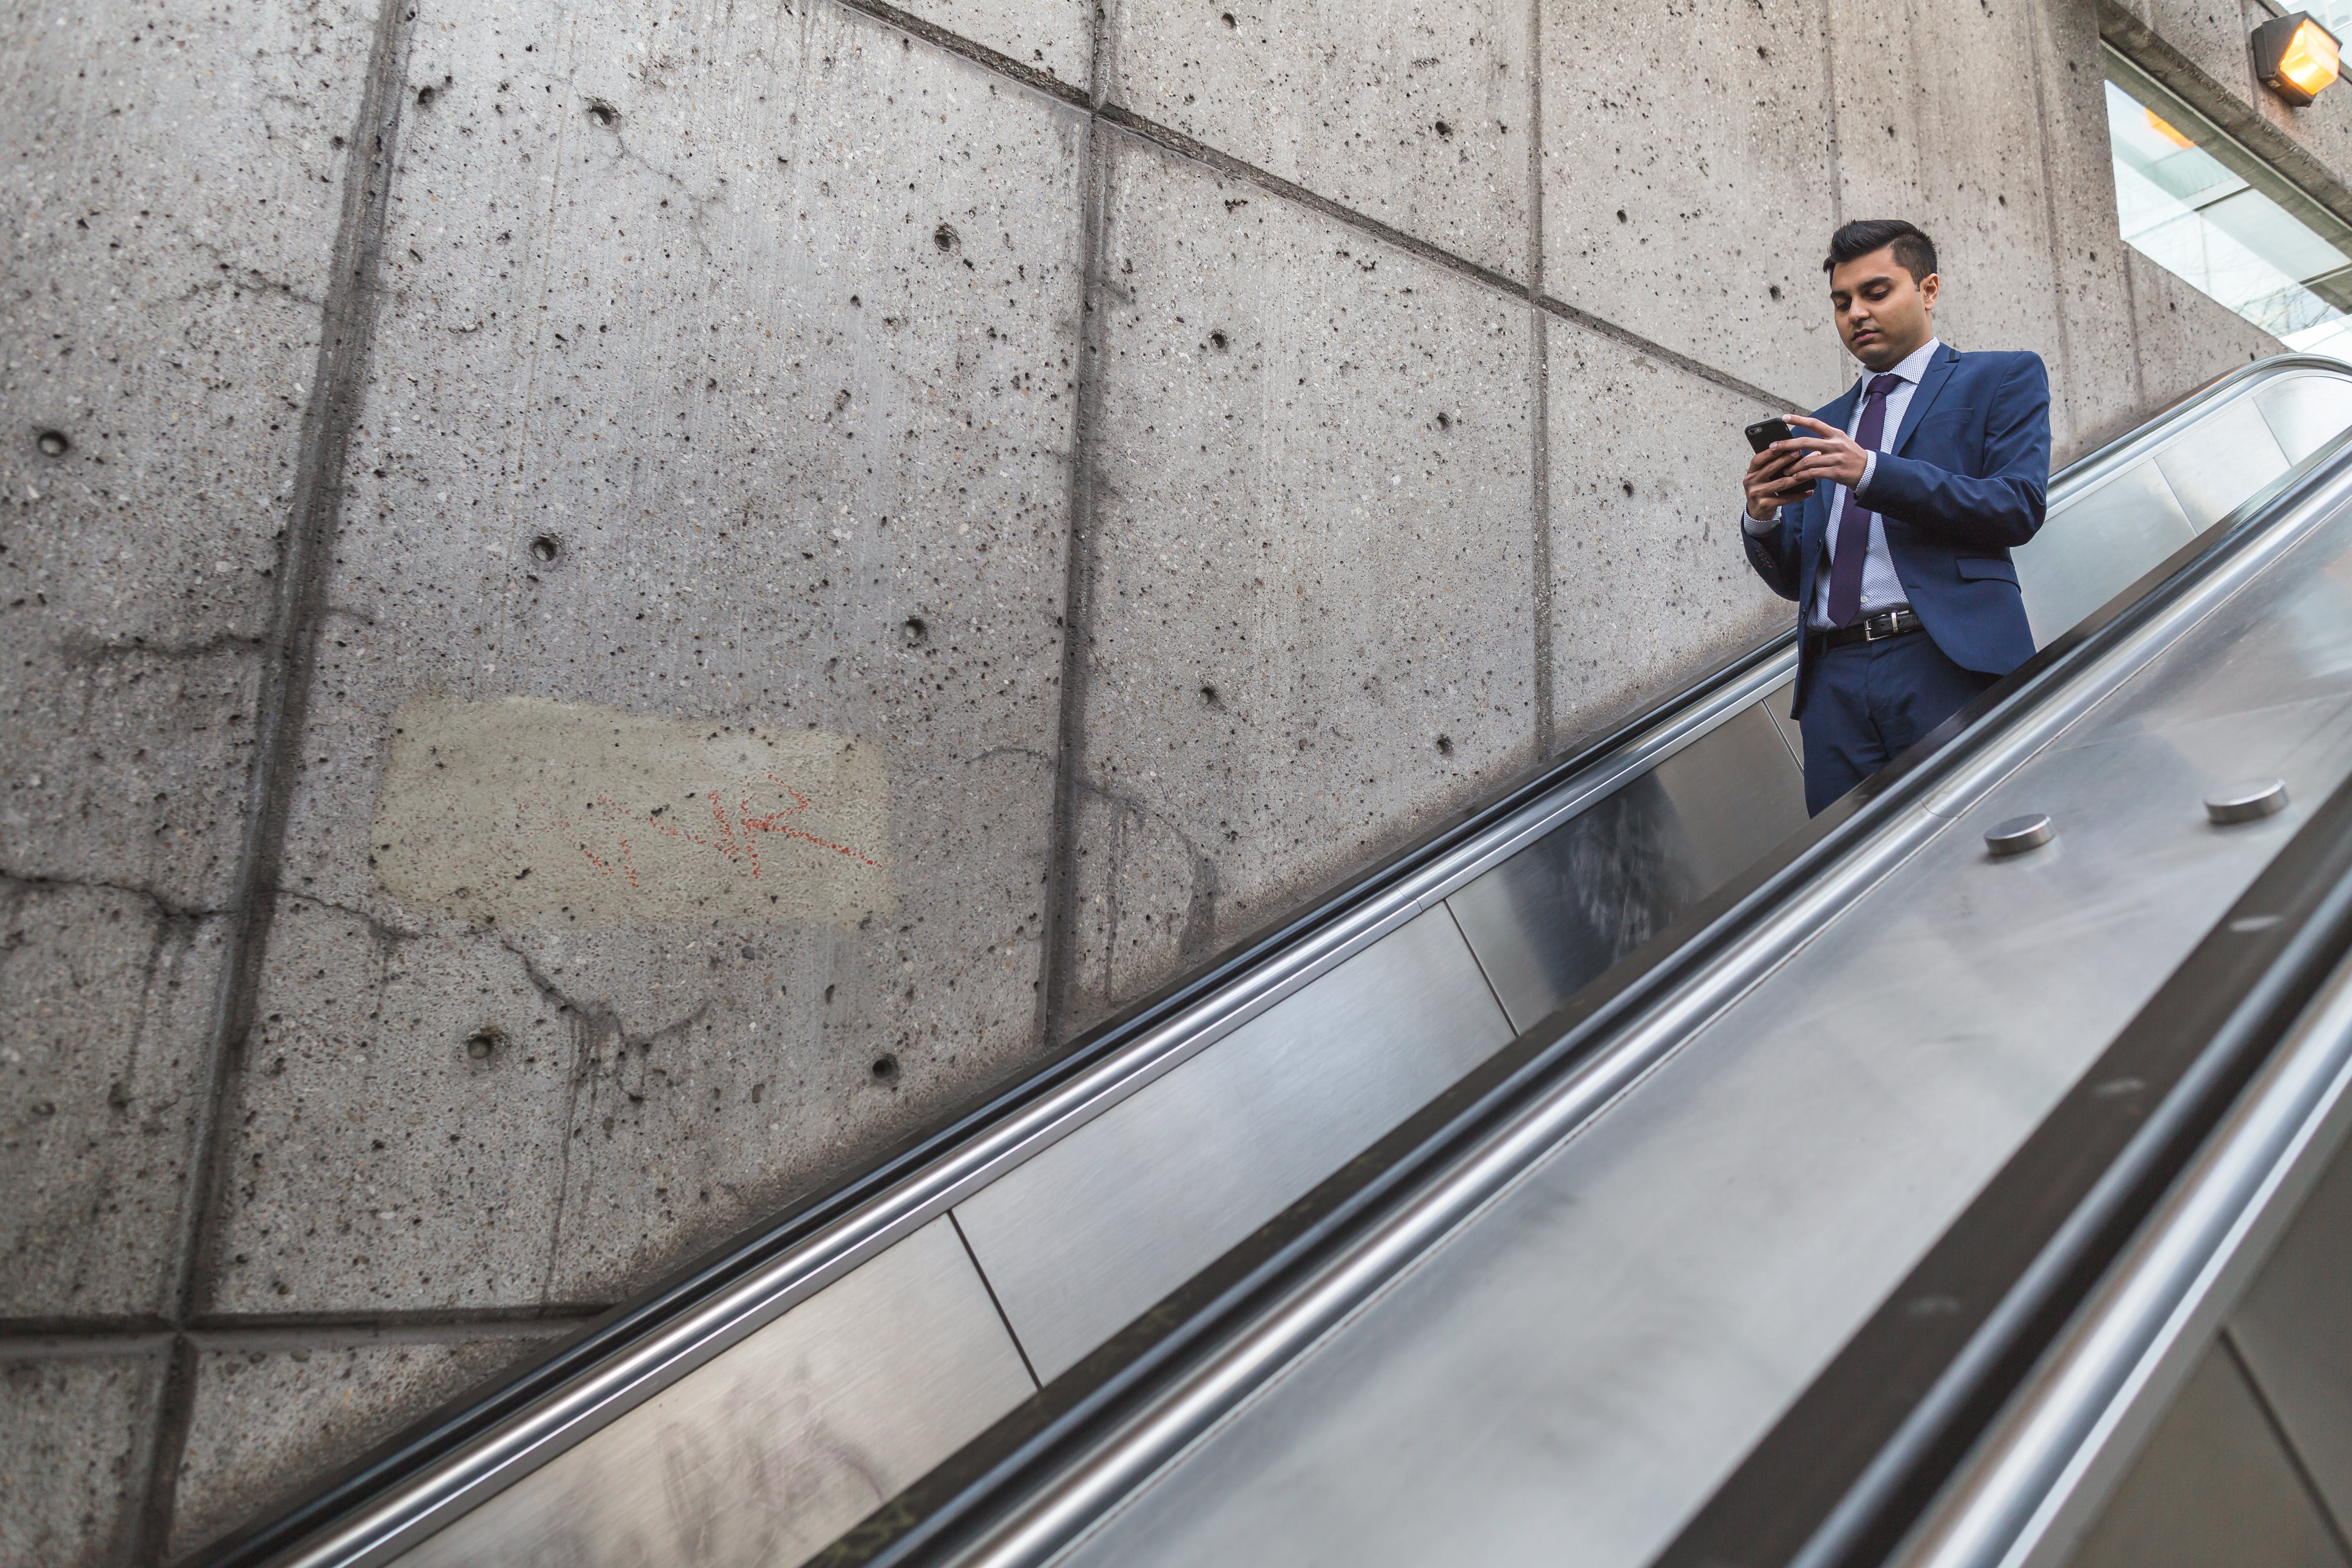 Man Wearing Blue Suit Holding Smartphone on Escalator